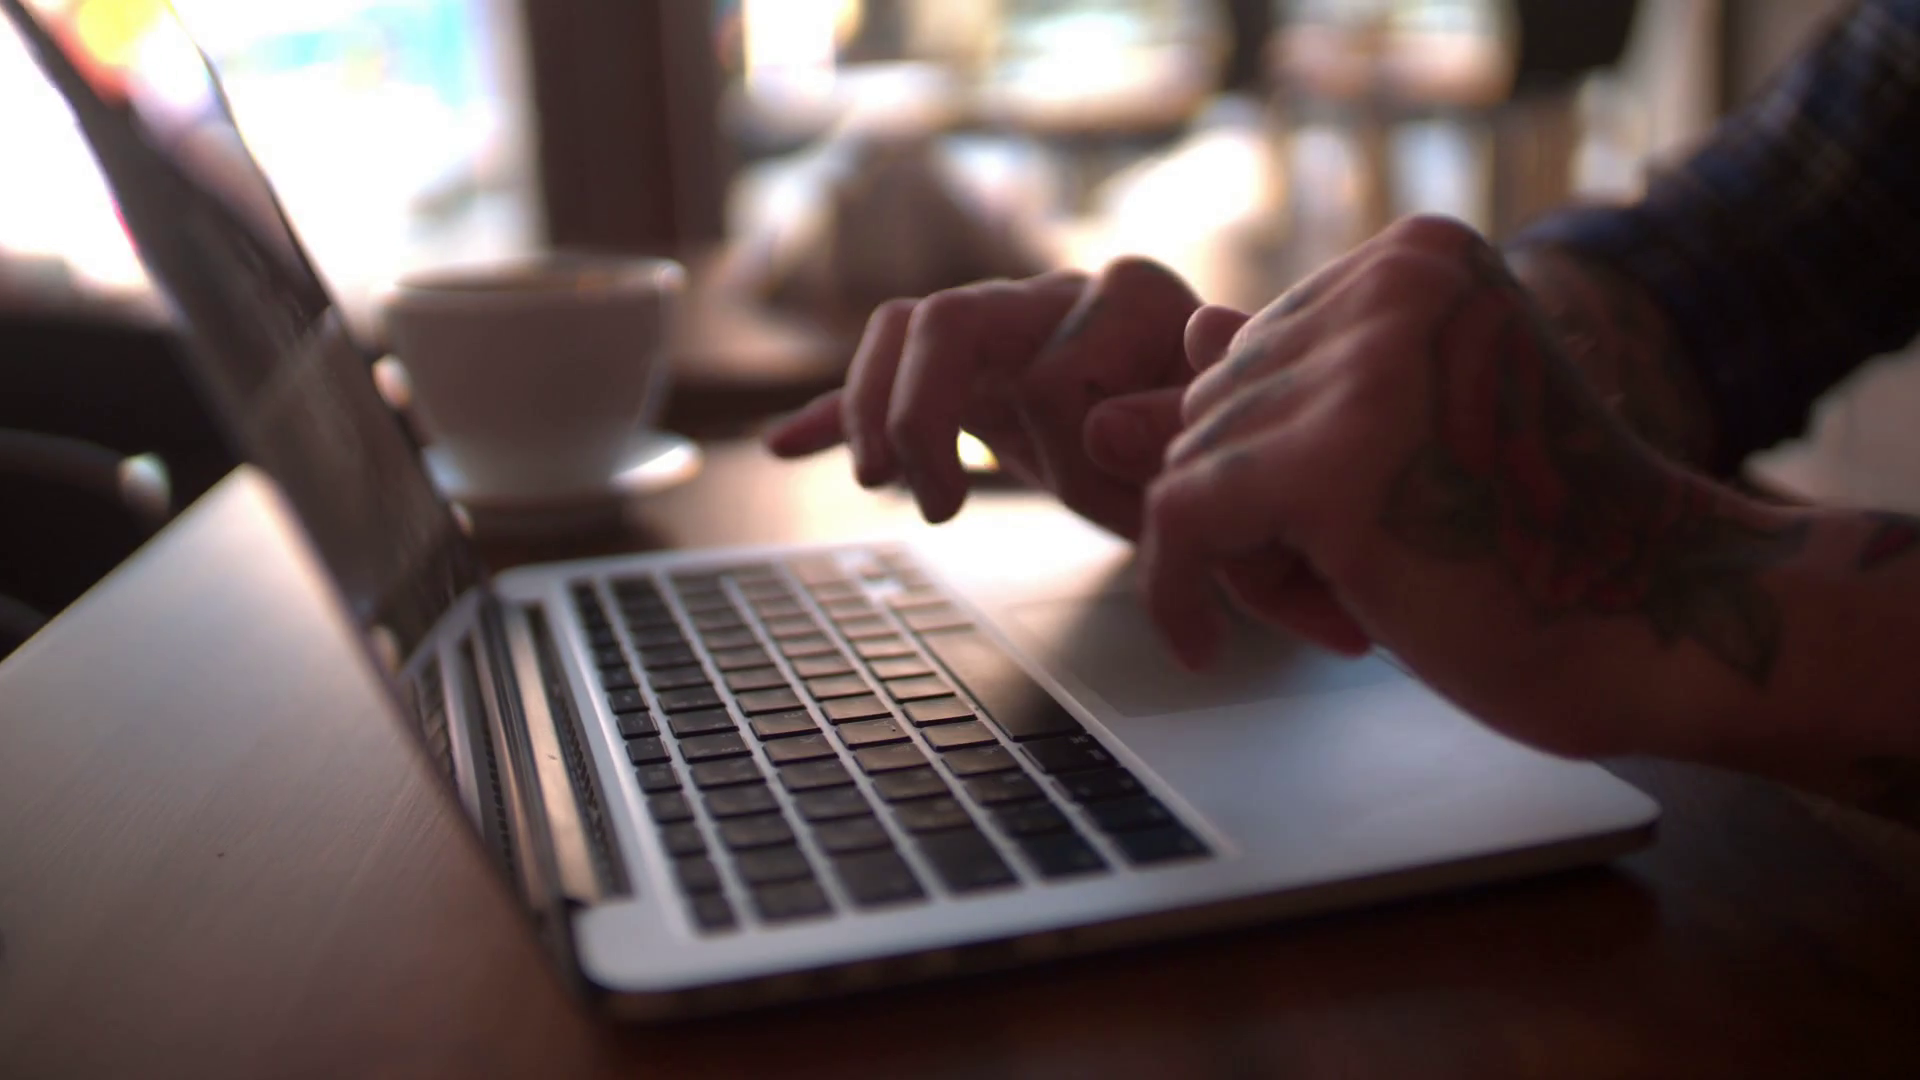 videoblocks-hipster-with-tattoos-at-coffee-shop-typing-on-laptop-keyboard_bue5ffm2l_thumbnail-full01